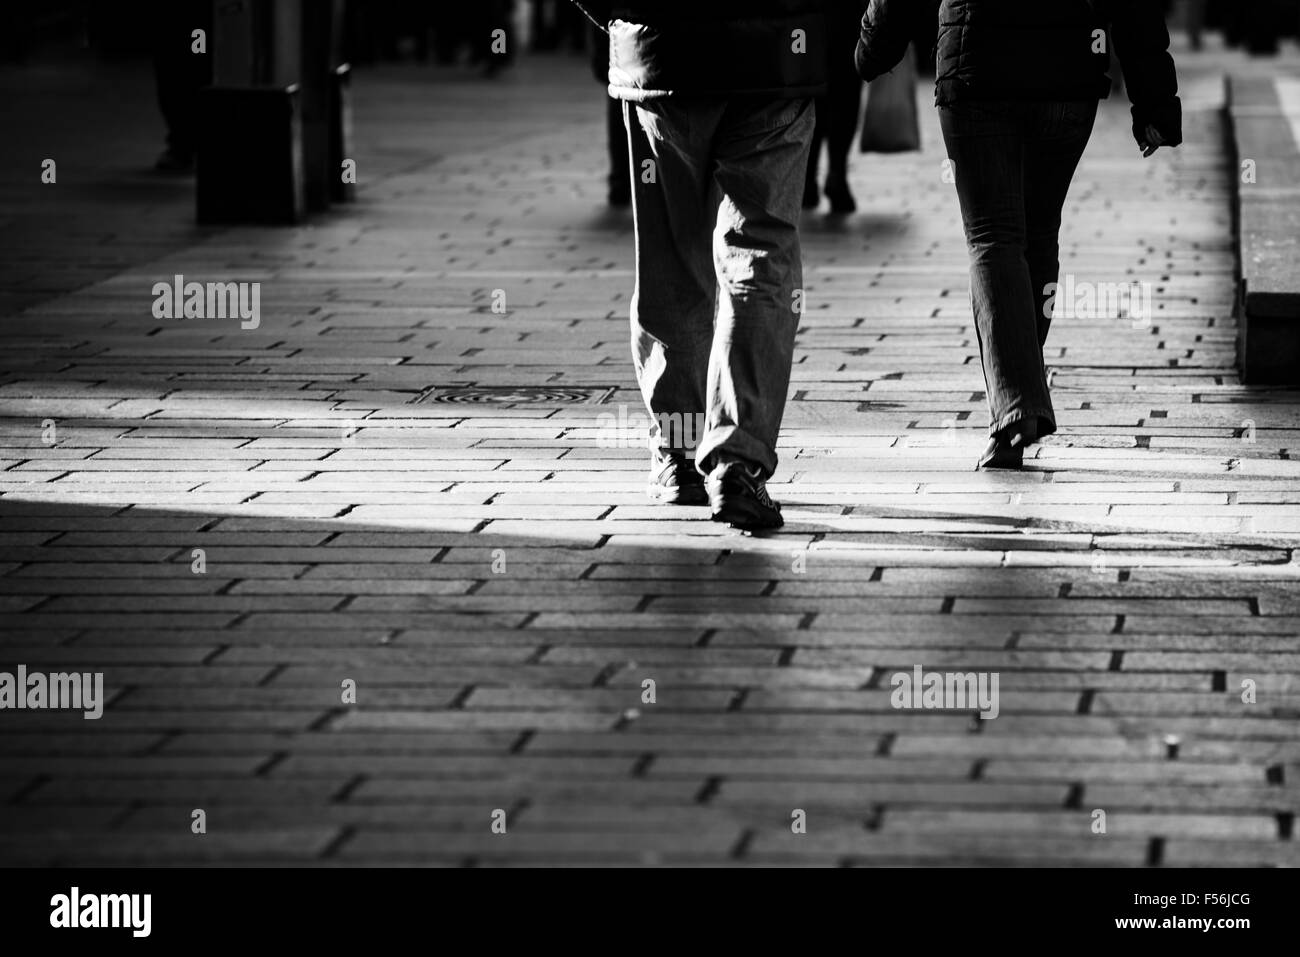 Walking through Glasgow - Stock Image